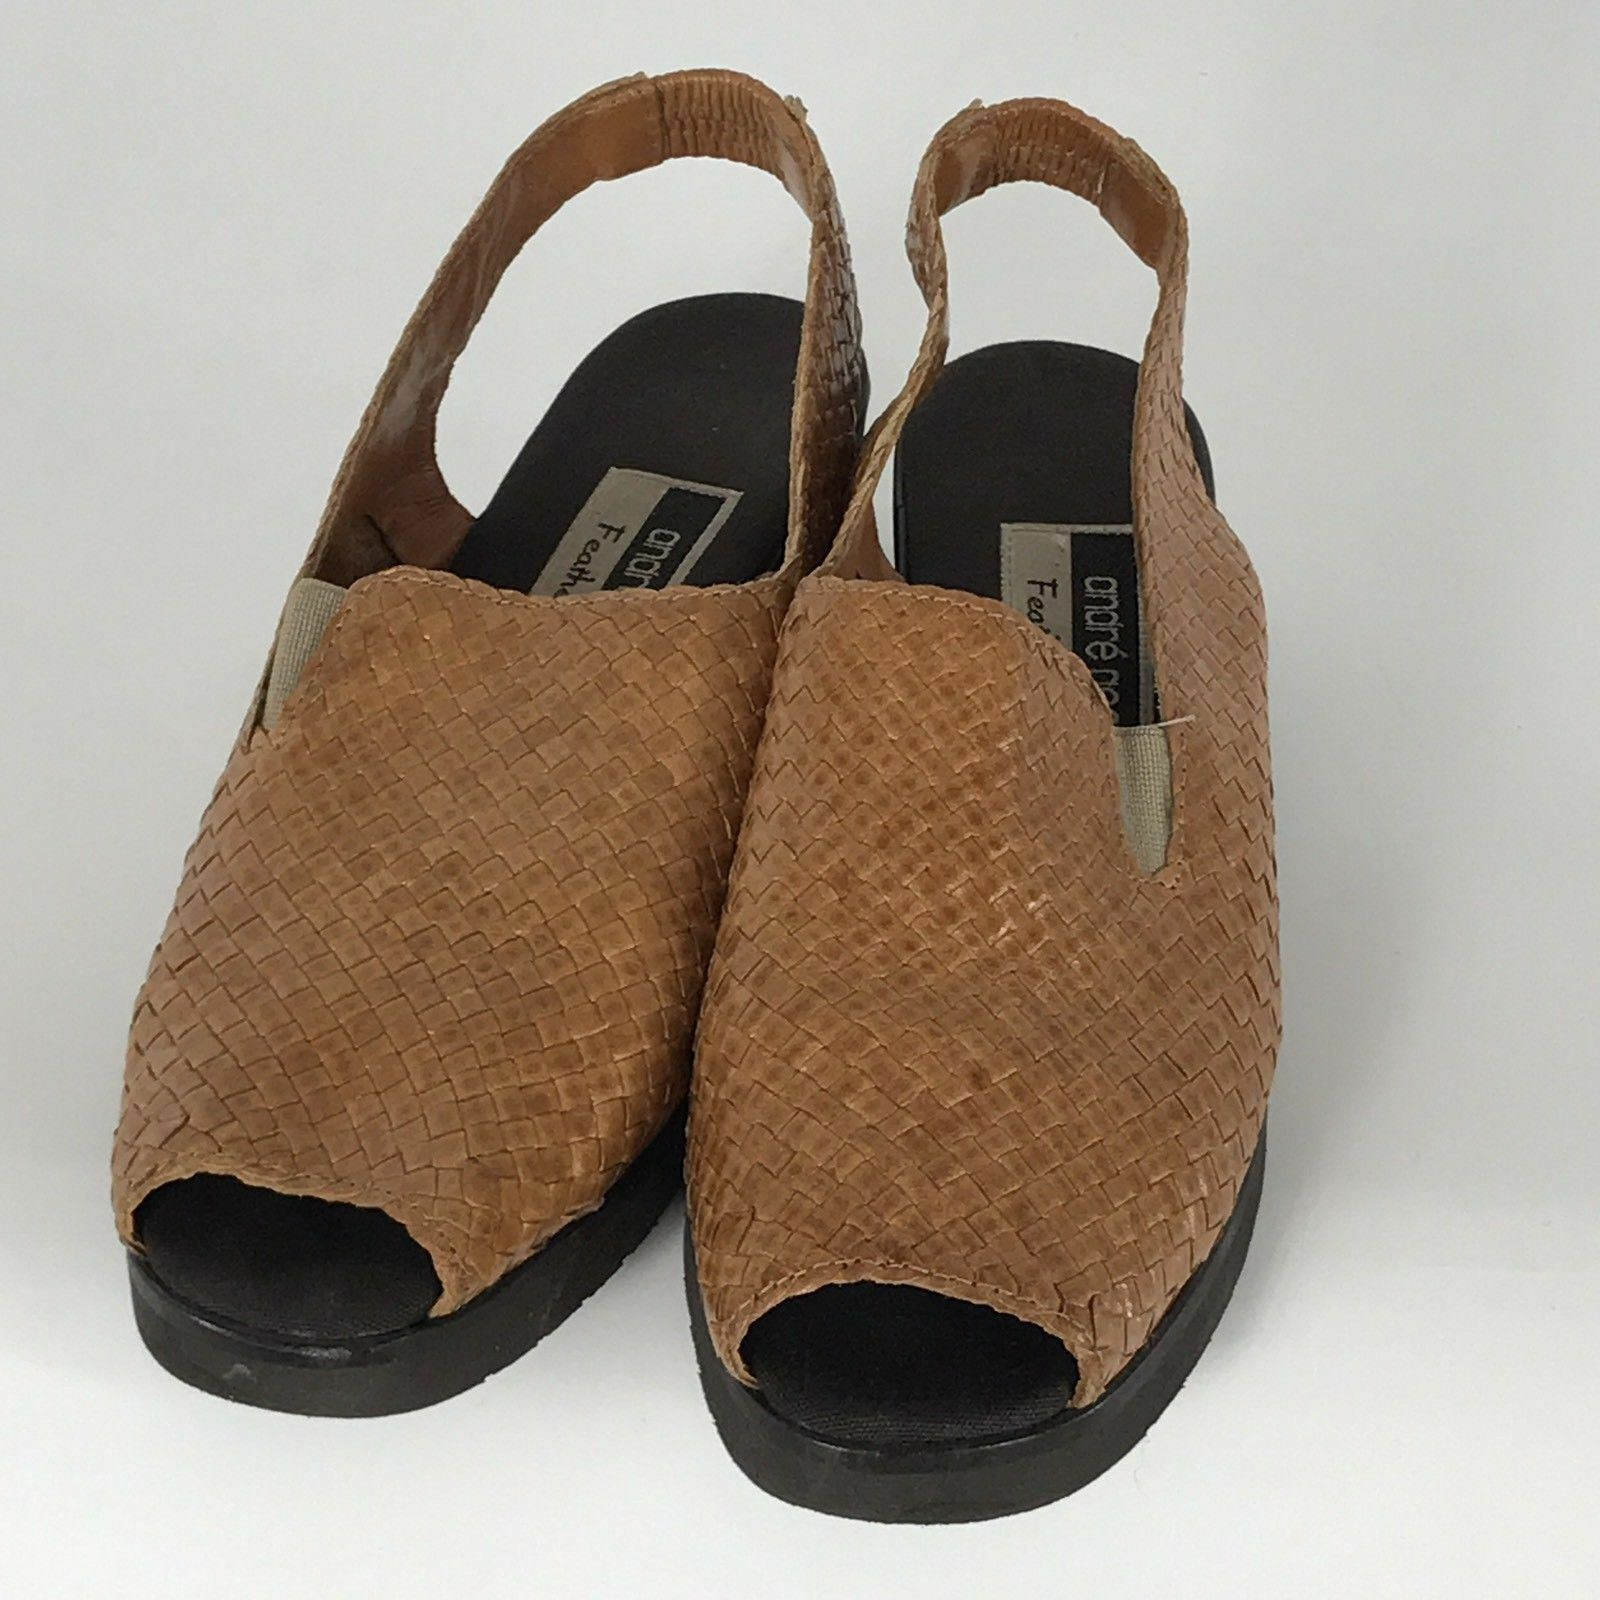 Andre' Assous Featherweights 7 Brown Tan Leather Woven Sandals Block Heel Spain